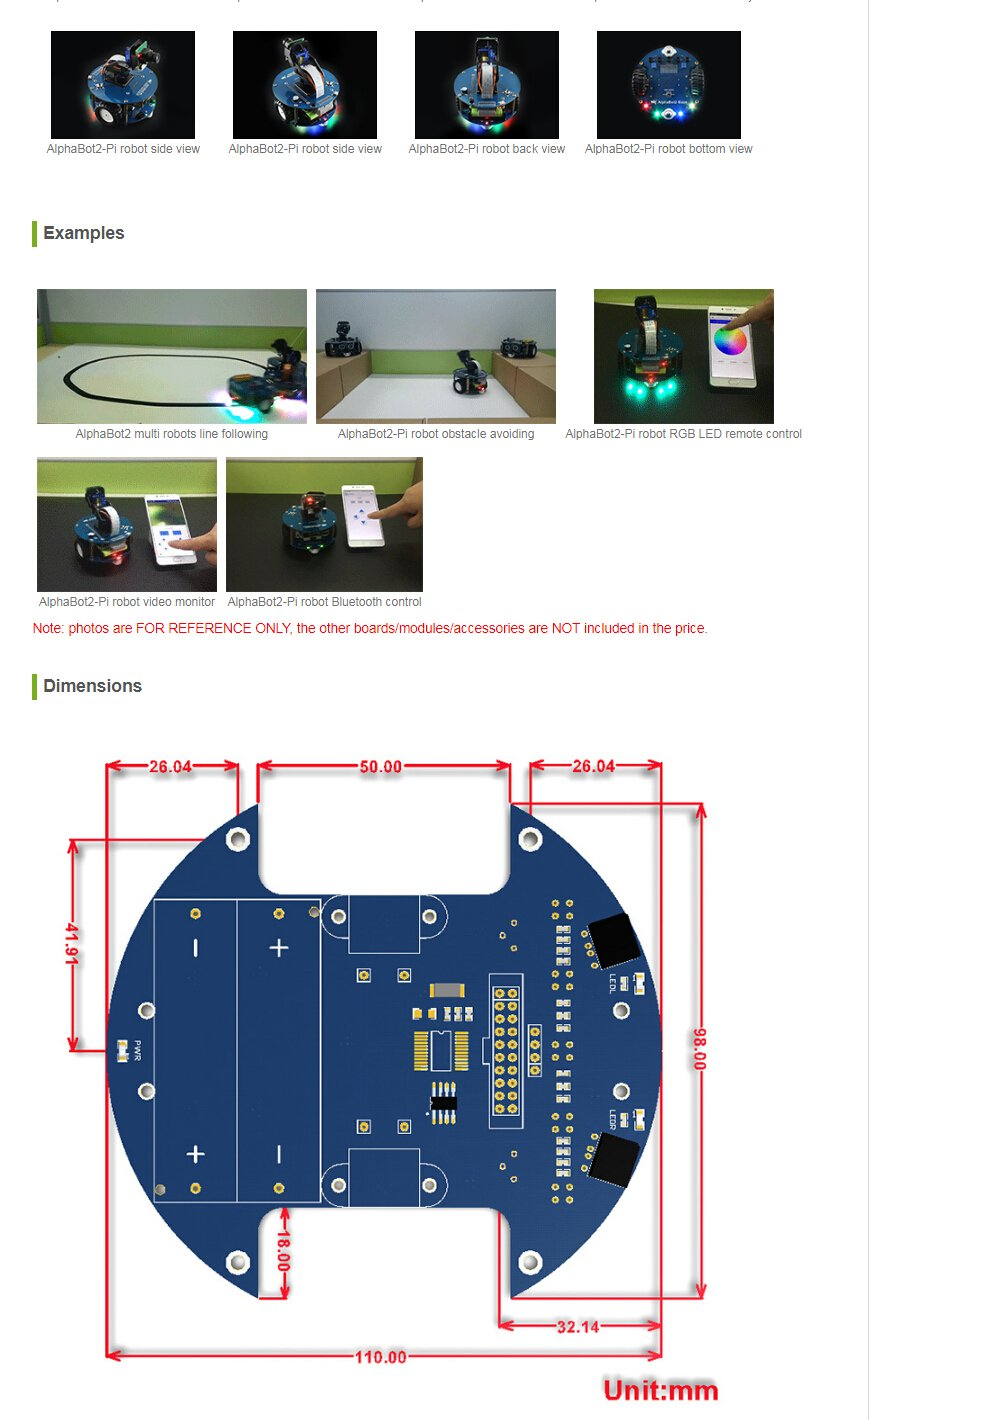 Including Line Tracking Obstacle Avoiding Bluetooth Infrared Wifi Remote Control Video Monitoring Waveshare AlphaBot2 Robot Building Kit for Pi with Controller Raspberry Pi 3 Model B